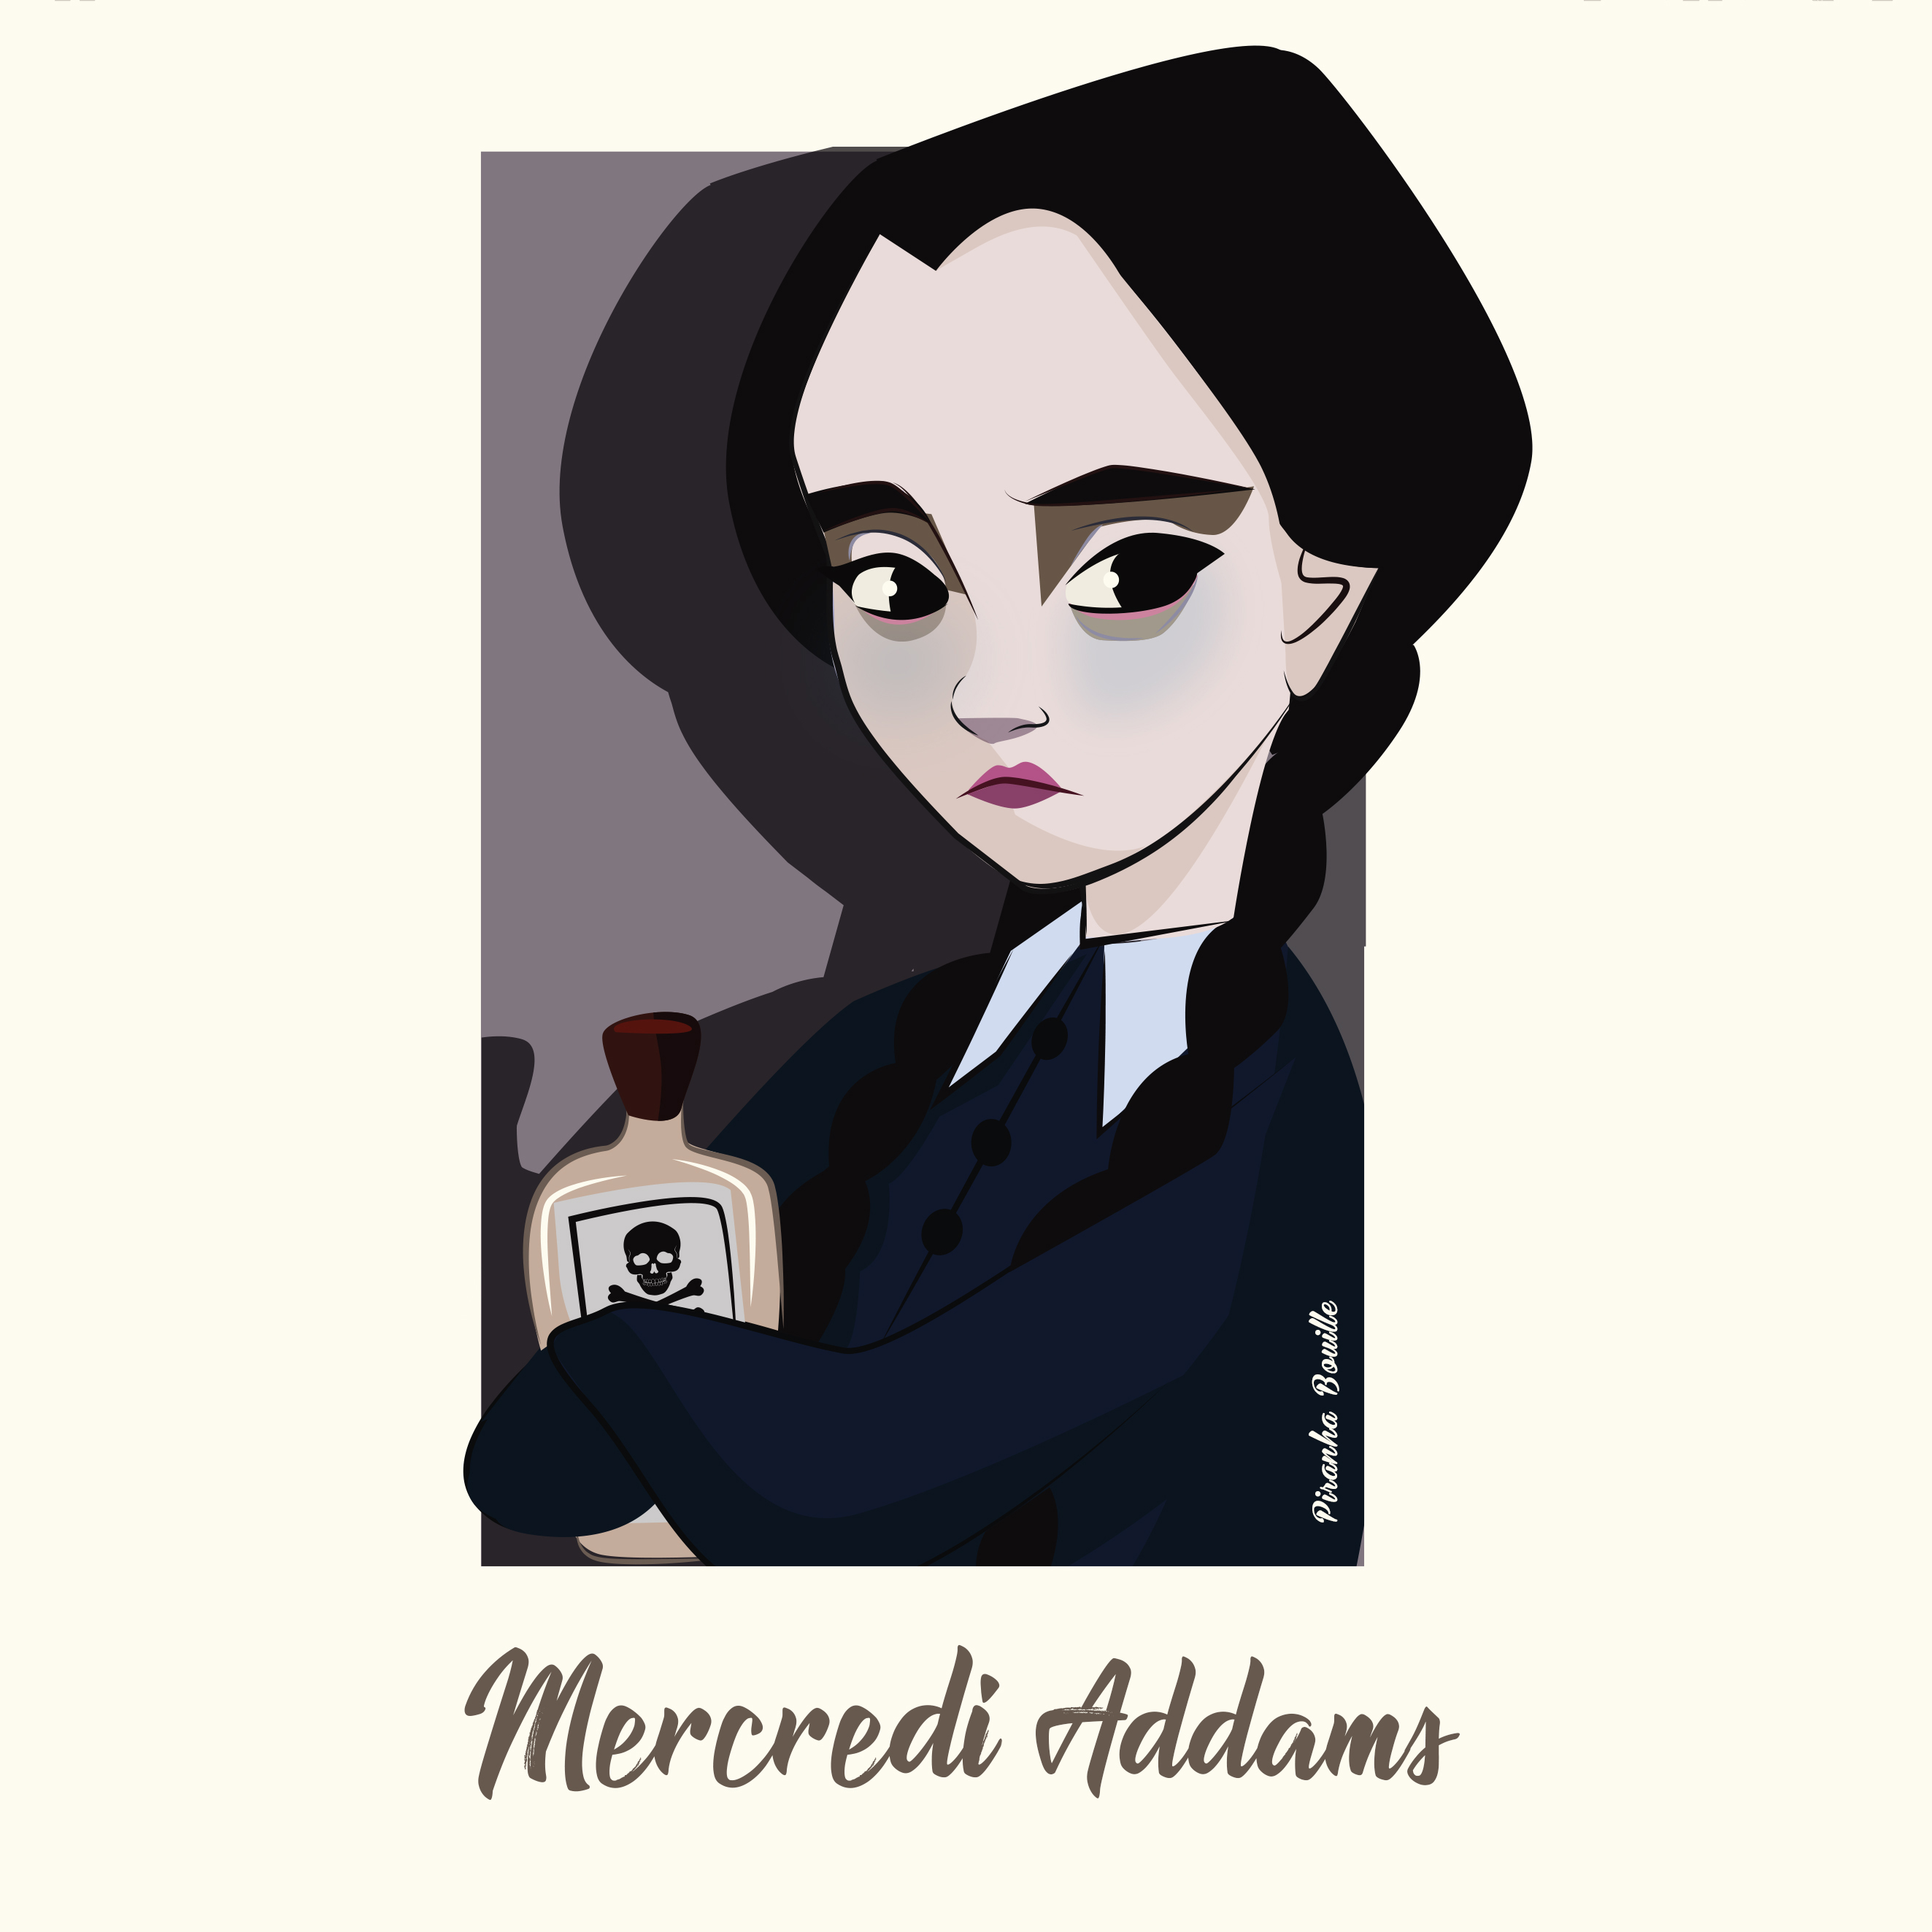 illustration mercredi addams par Piranha Bouille